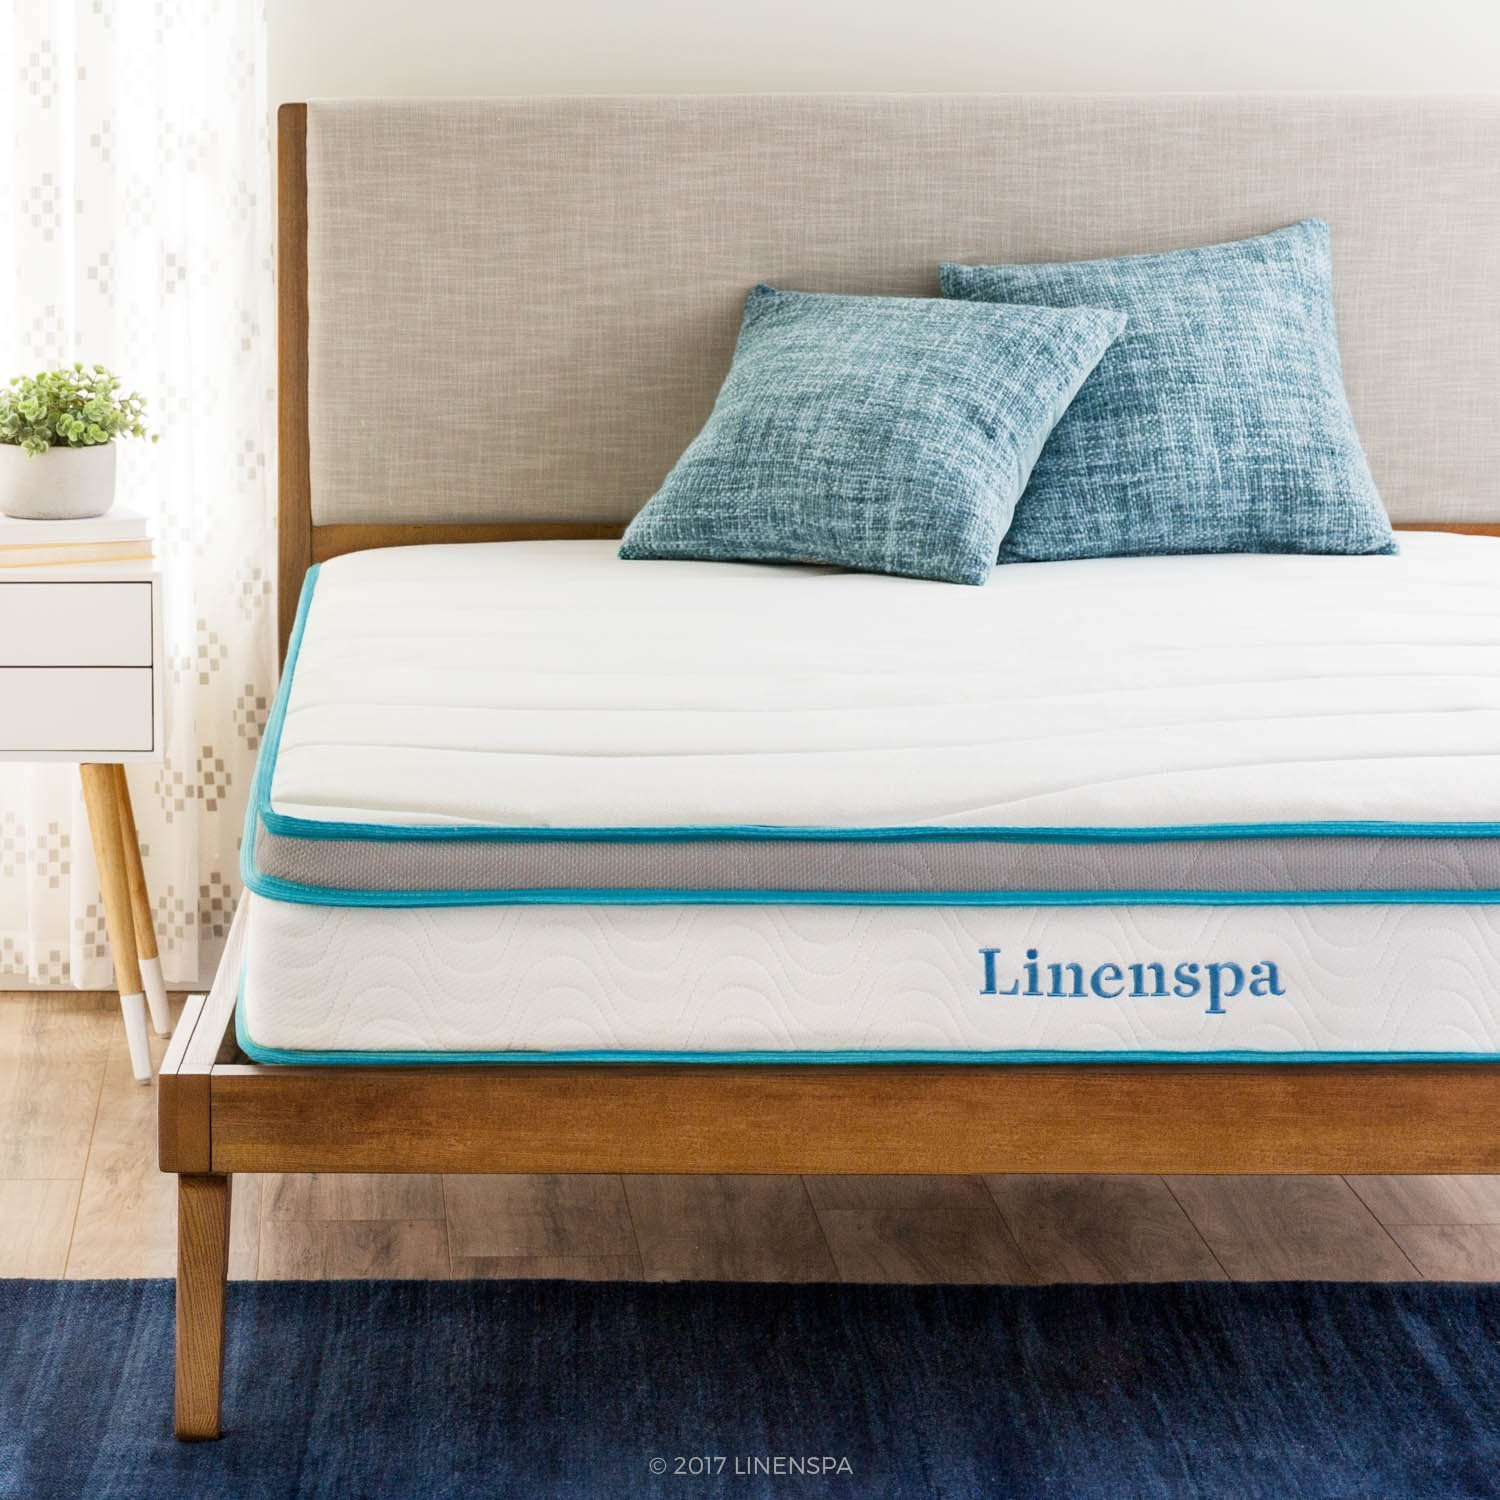 LinenSpa 8 Inch Innerspring Mattress Review